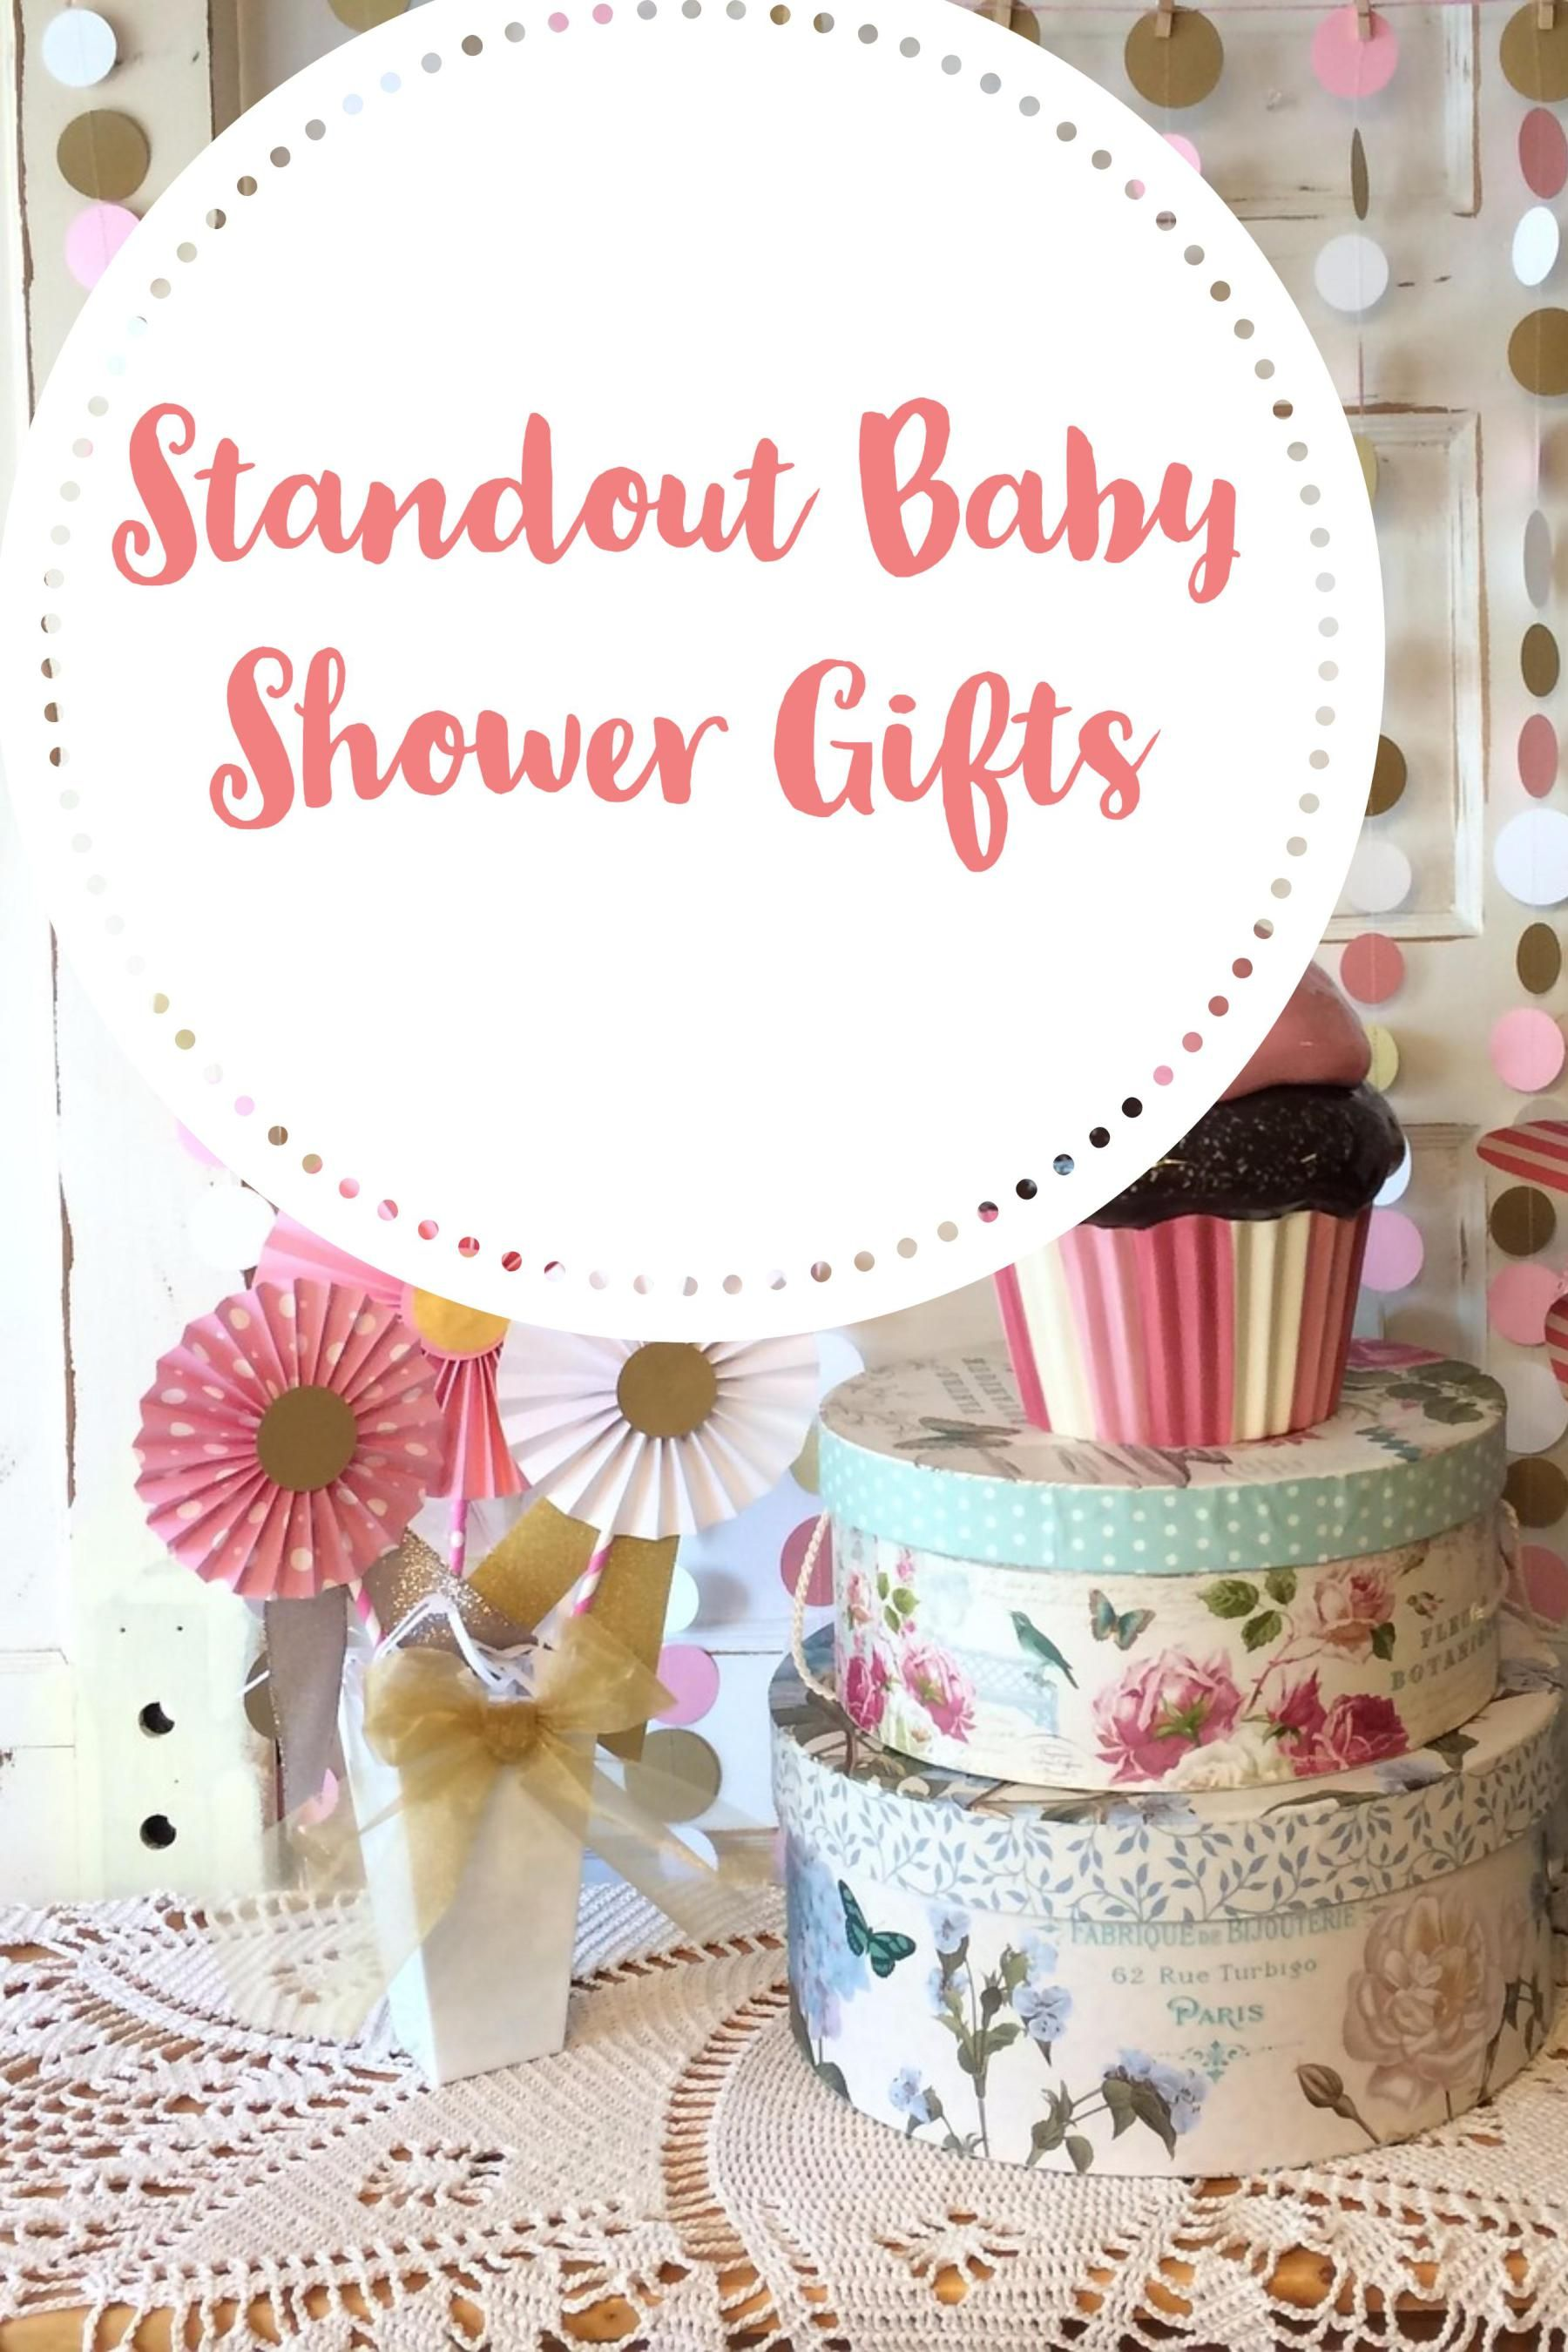 Best Baby Shower Gifts That Stand Out From The Crowd The Coffee